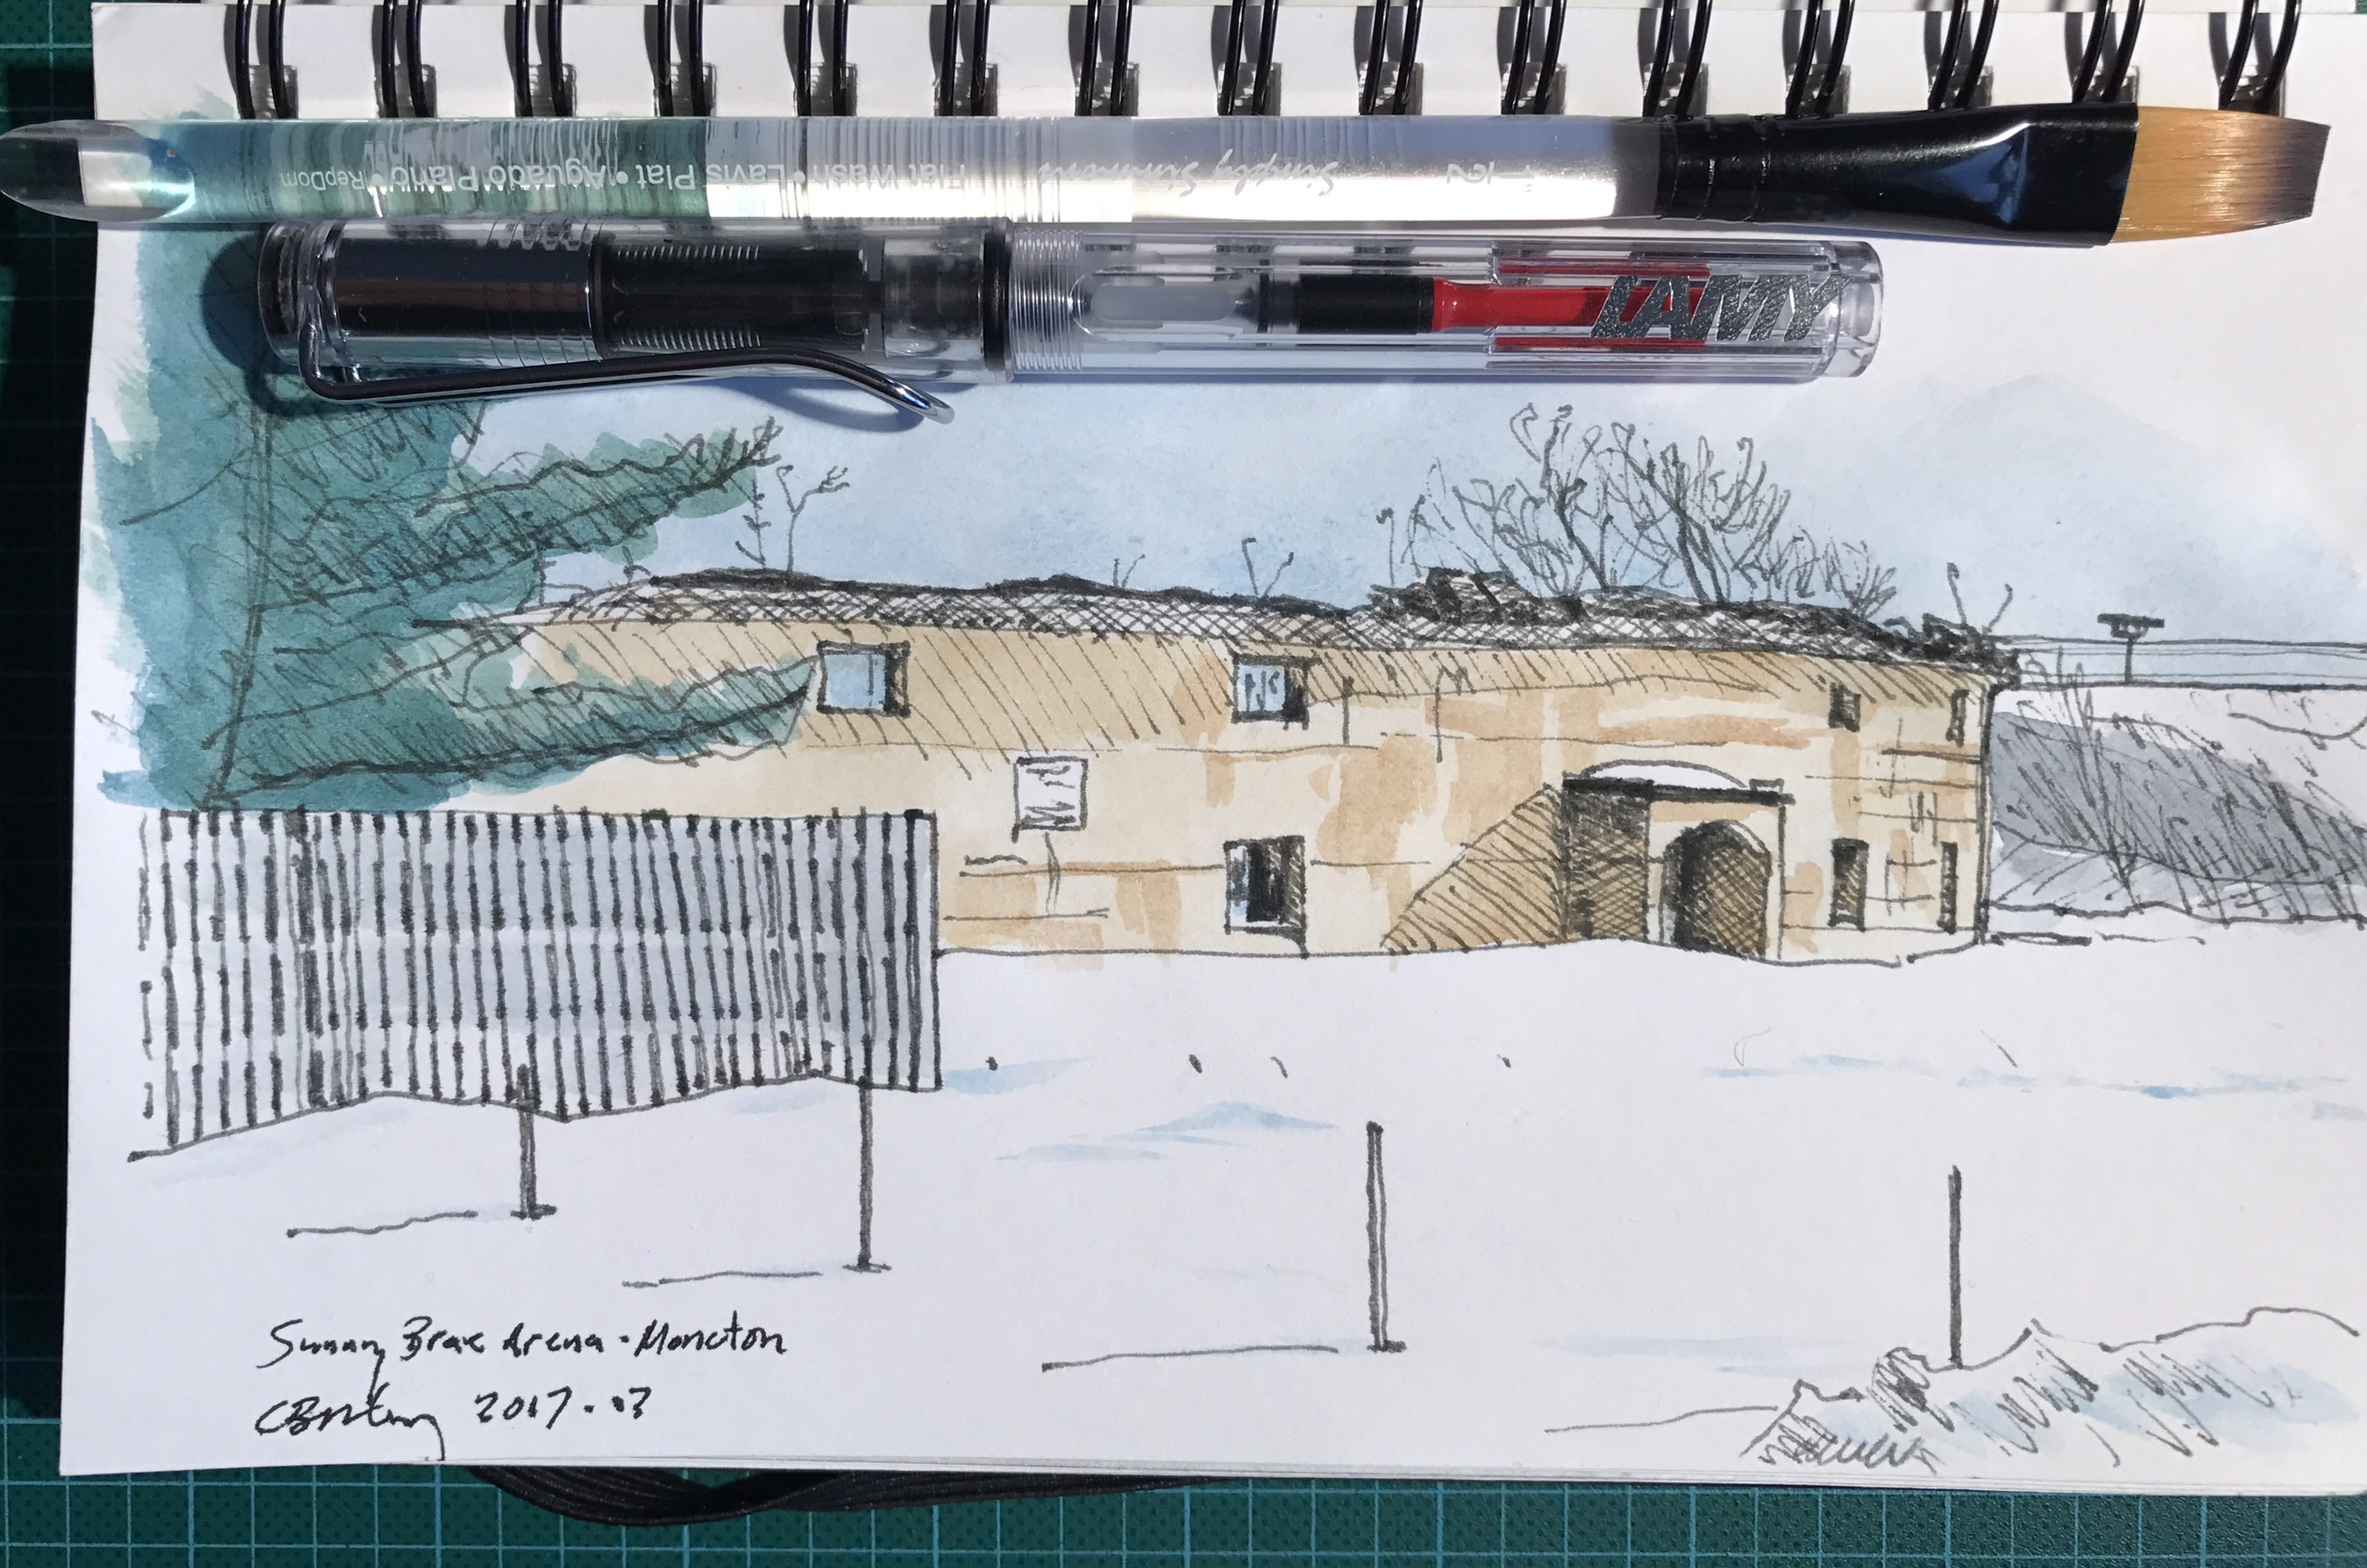 Watercolour sketch of the ruins of the Sunny Brae Arena in Moncton